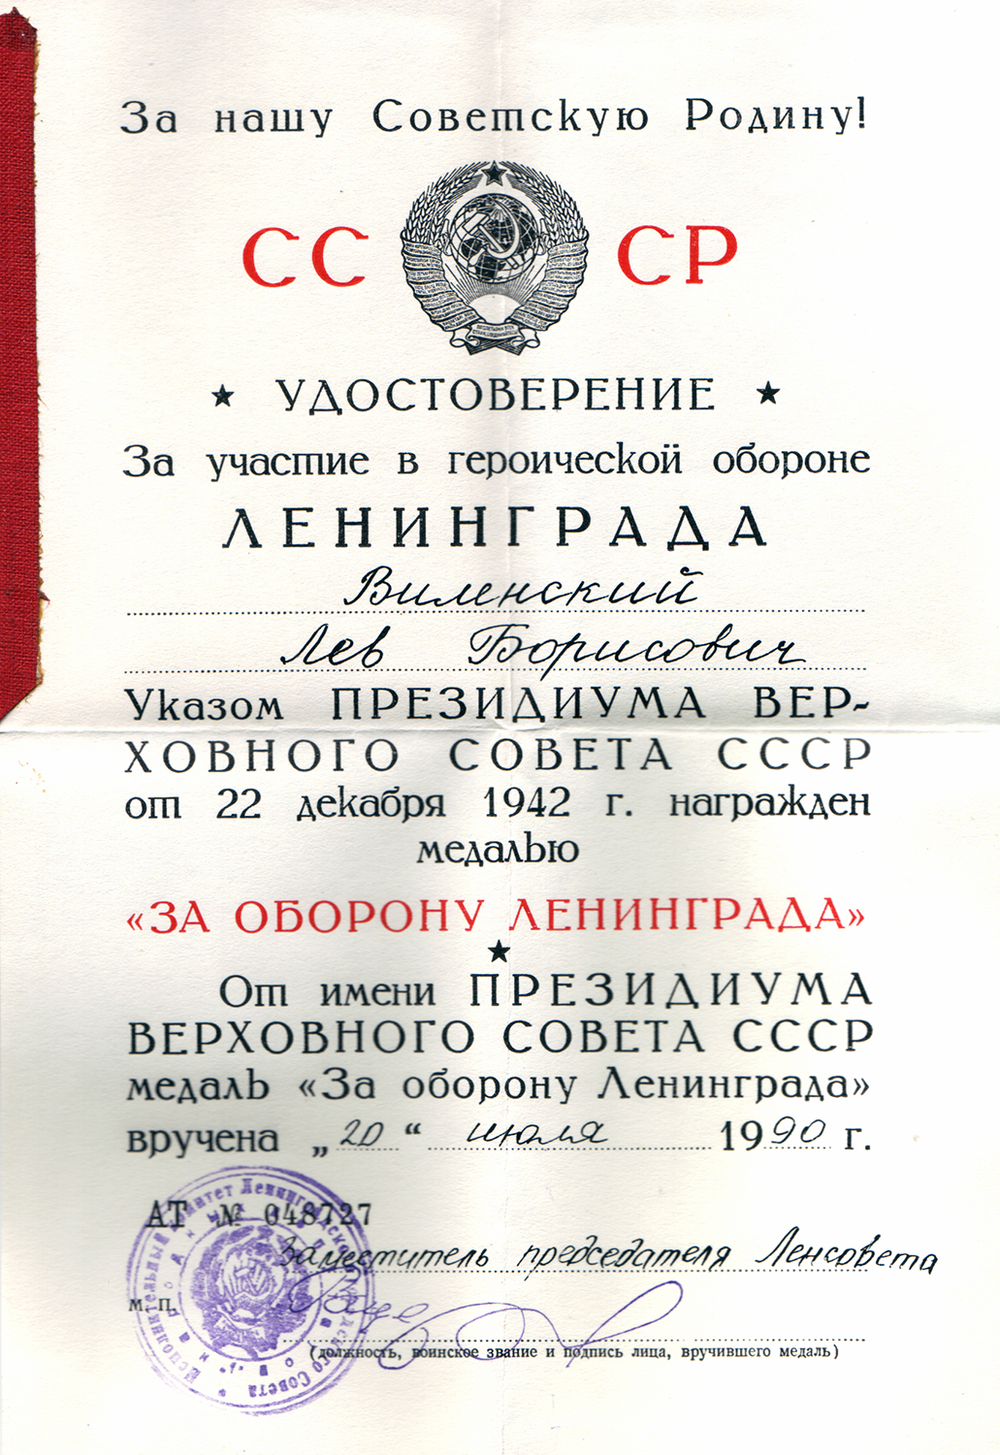 Award certificate, Medal for the Defense of Leningrad